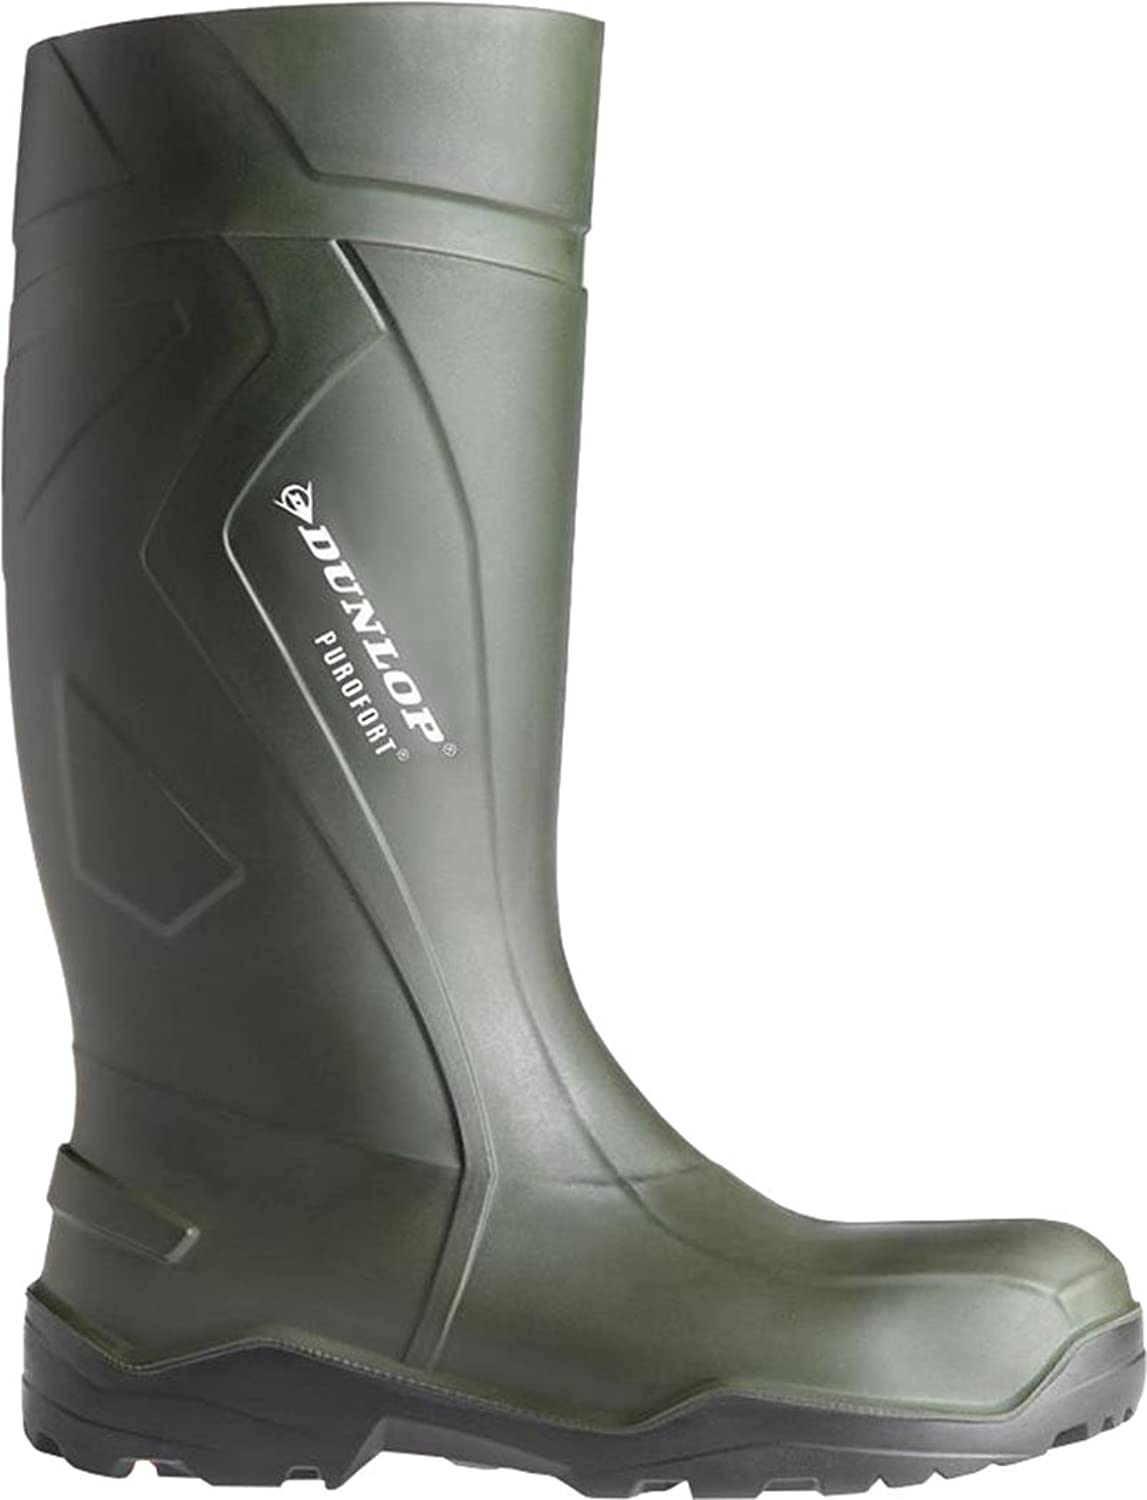 Dunlop C762933 Mens Purofort Plus Full Safety Standard Wellington Boxed Boots